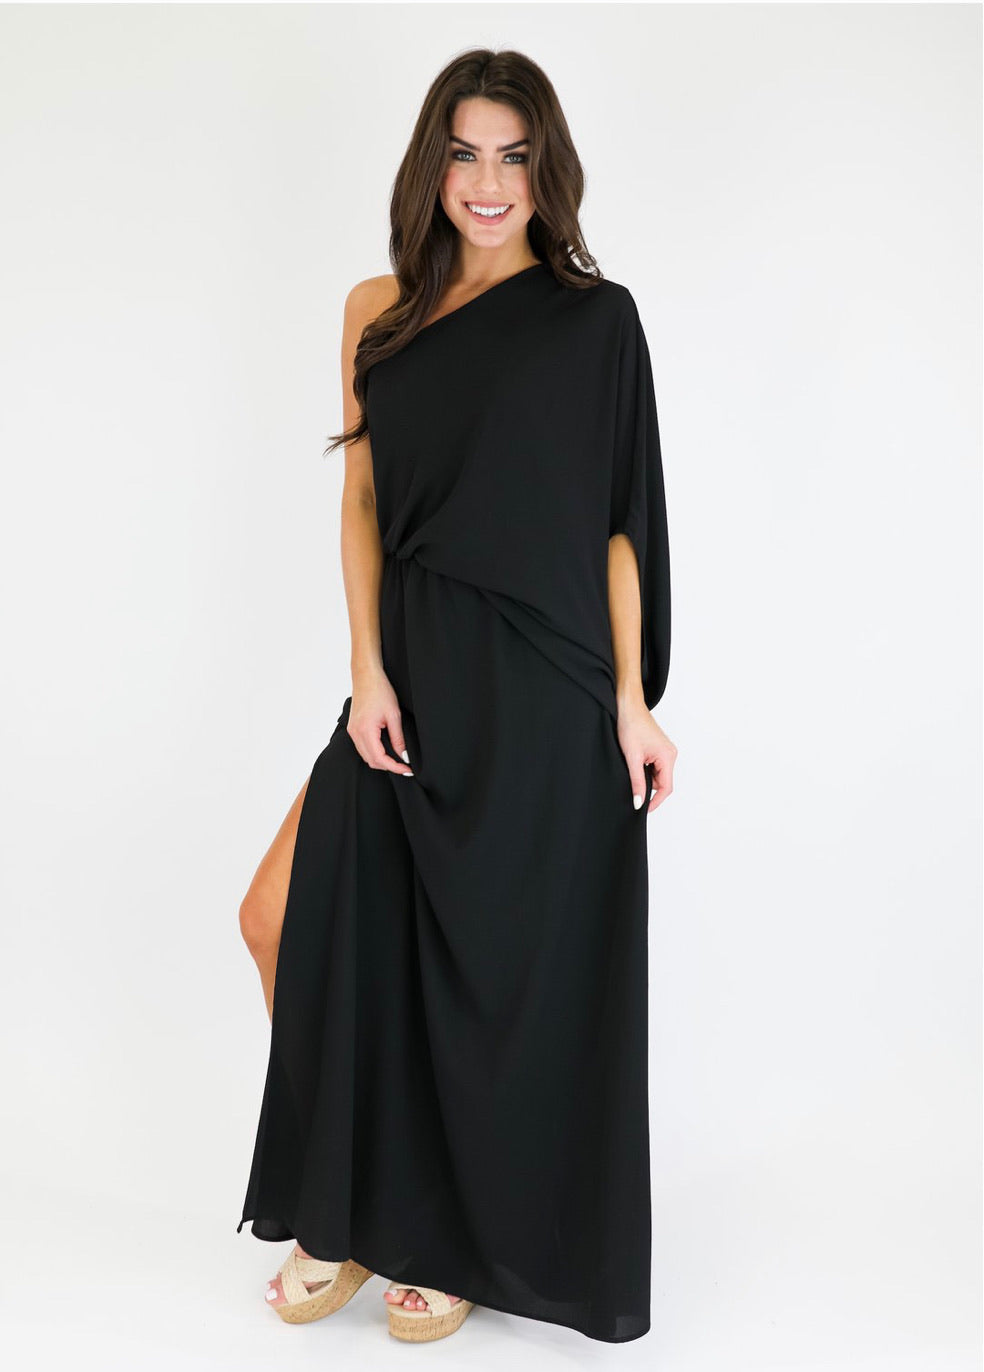 Teggy One Shoulder Dress - Black